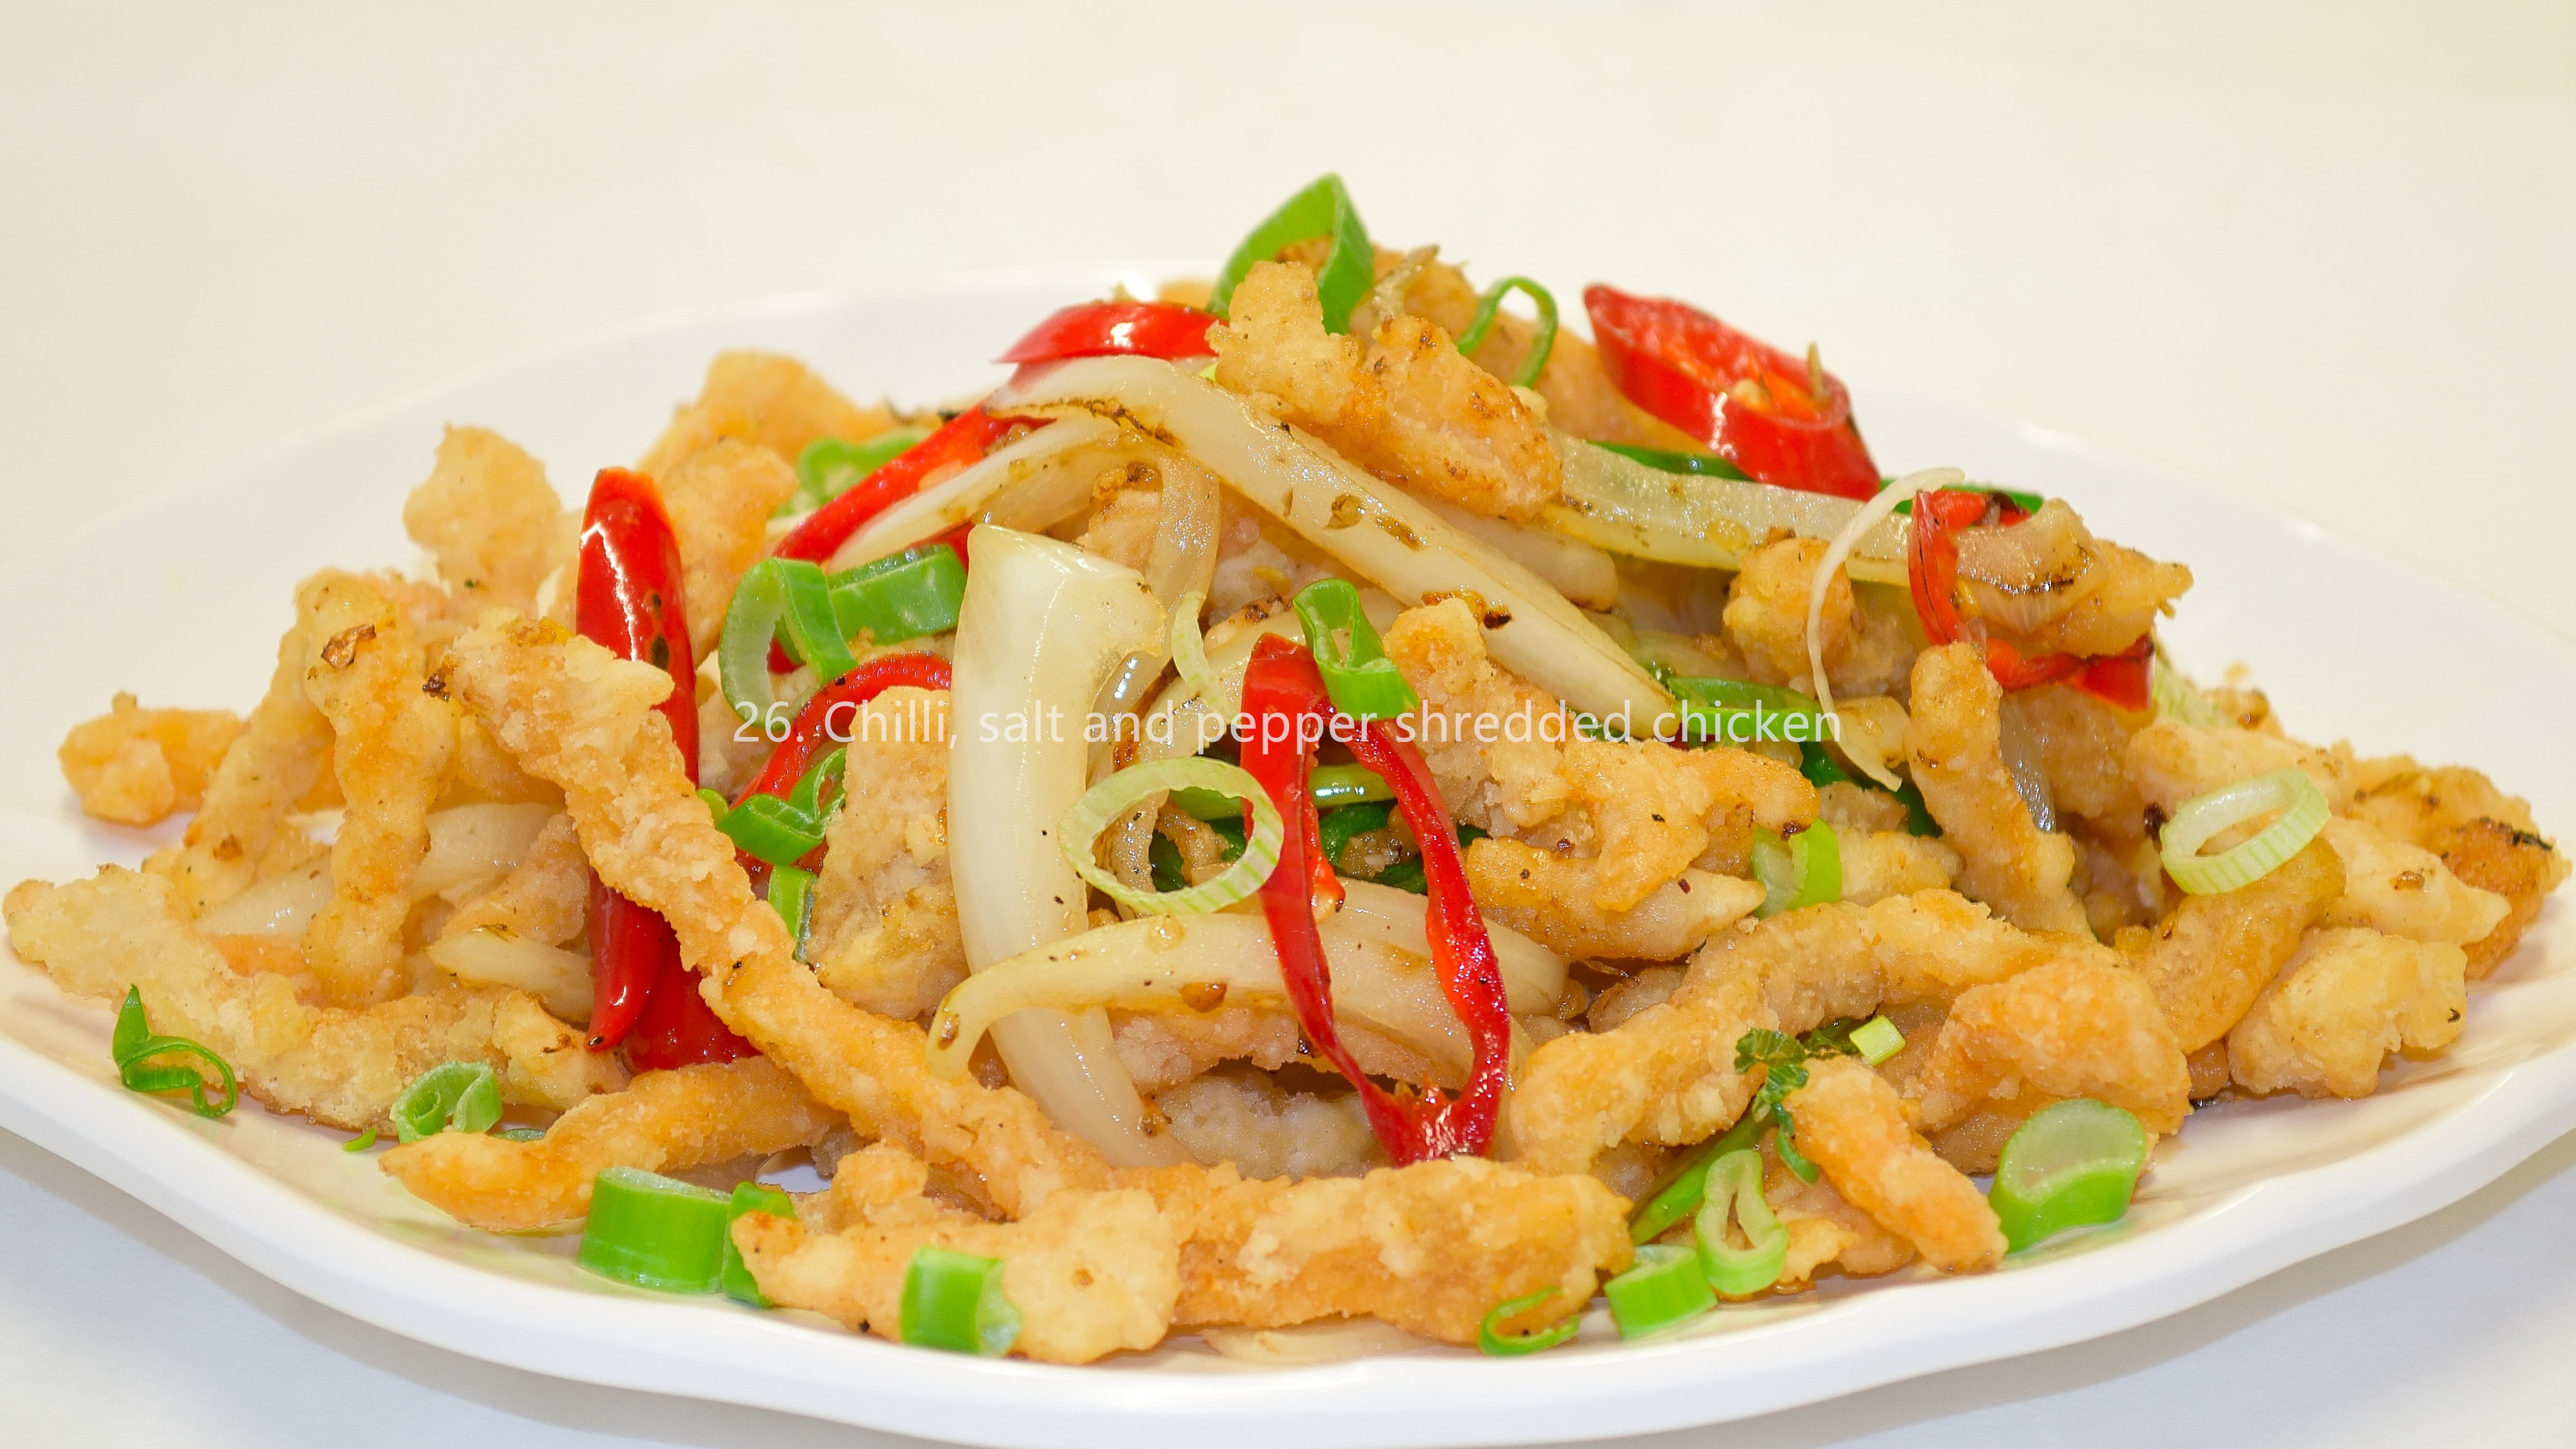 Chilli, salt and pepper shredded chicken 椒盐鸡丝